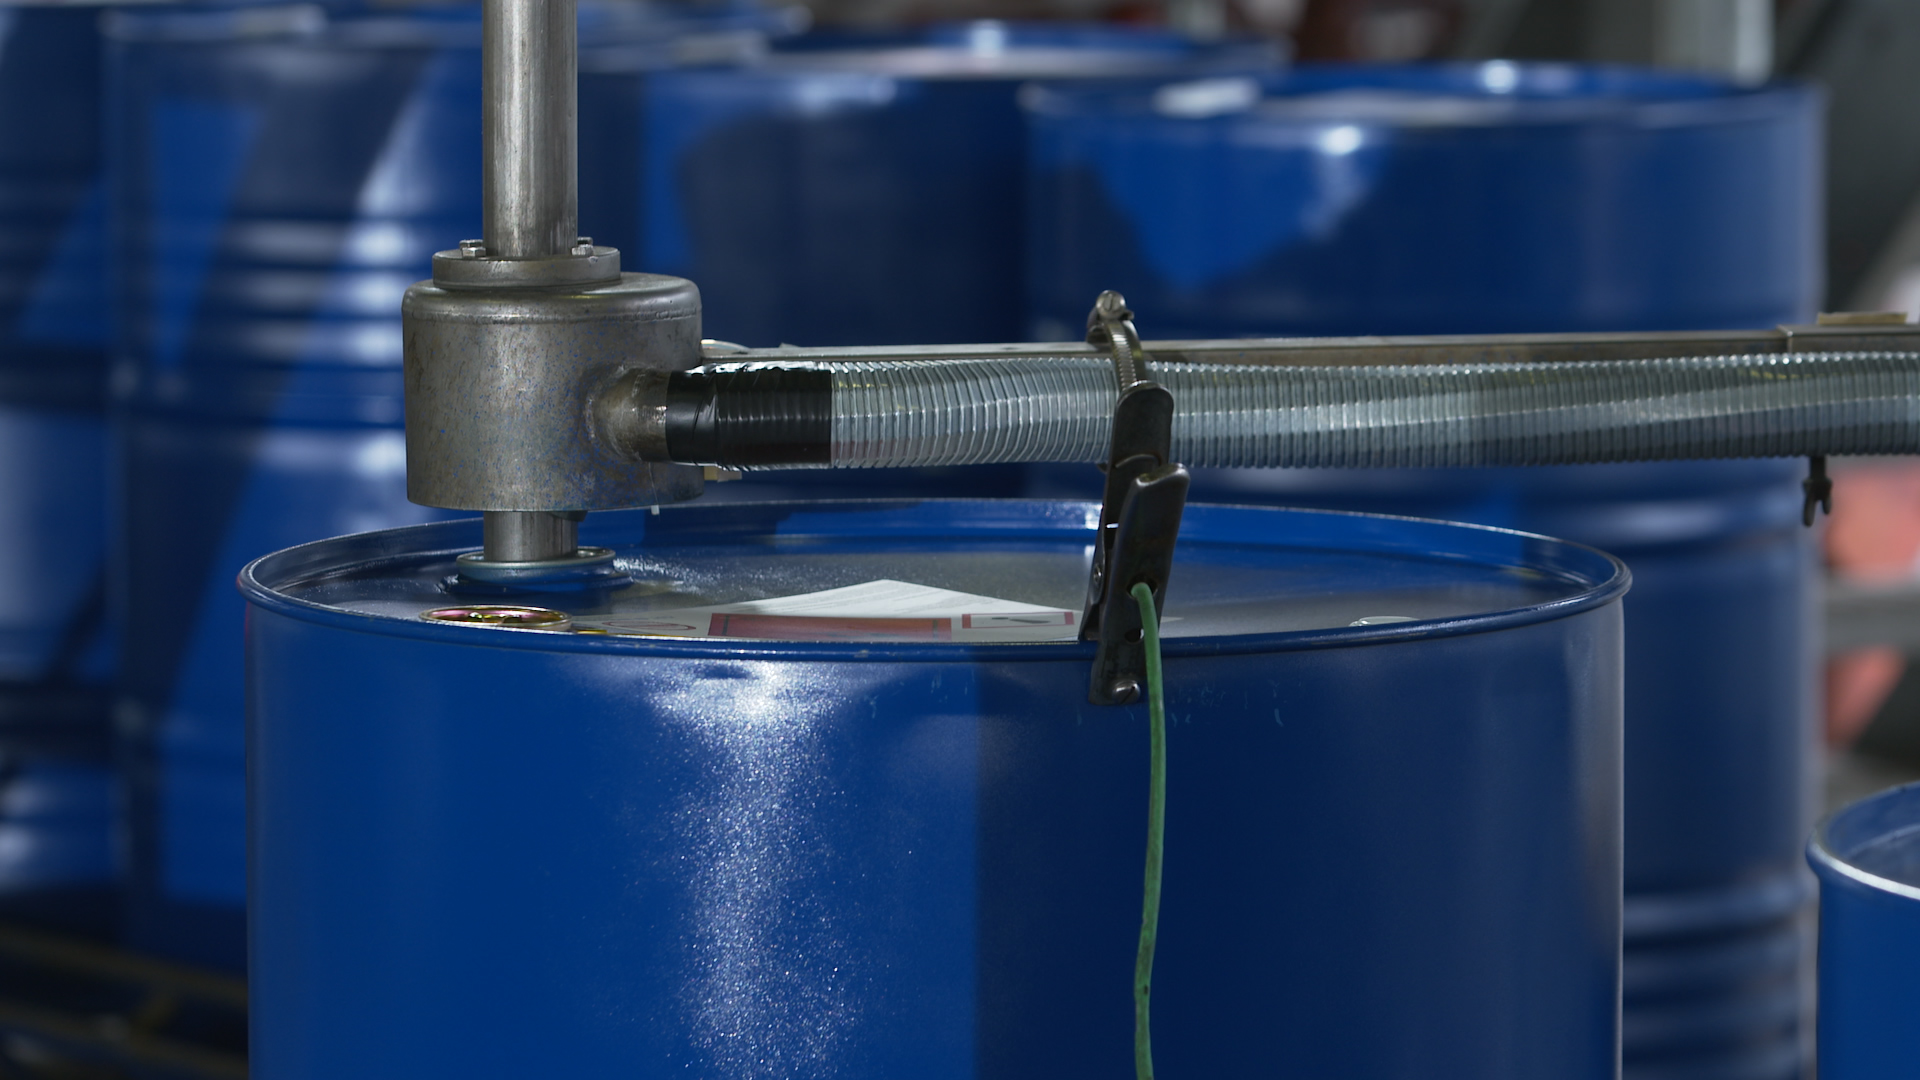 Filling of a drum on a roller conveyor (suction deactivated/activated)